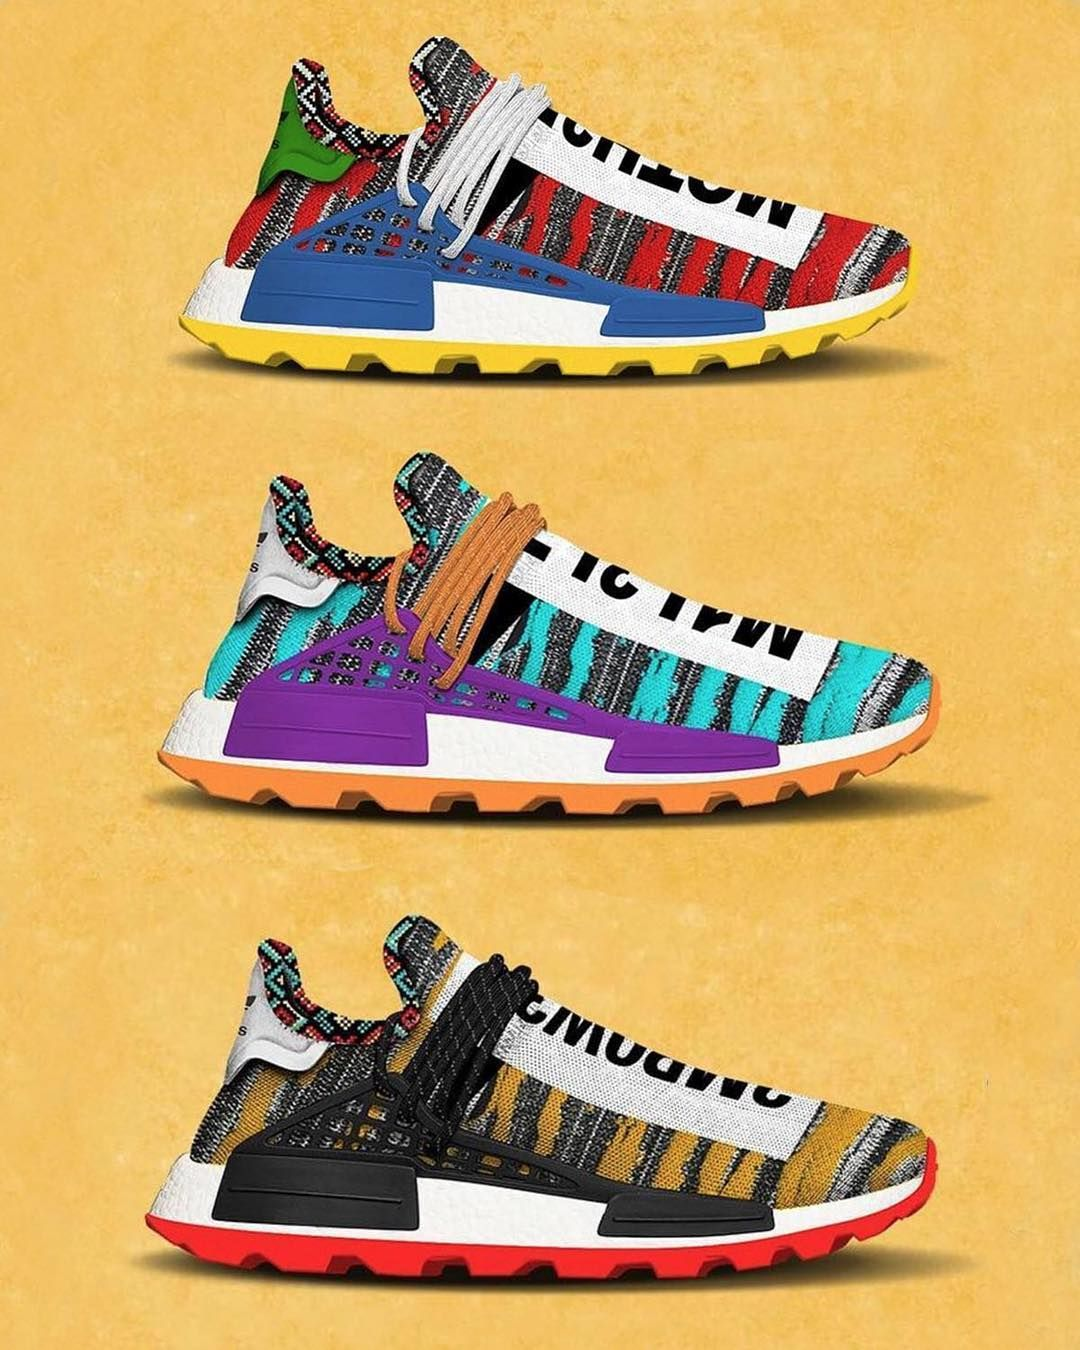 on sale 7fb34 e9c05 The @pharrell x adidas Originals Afro NMD Hu Pack is ...